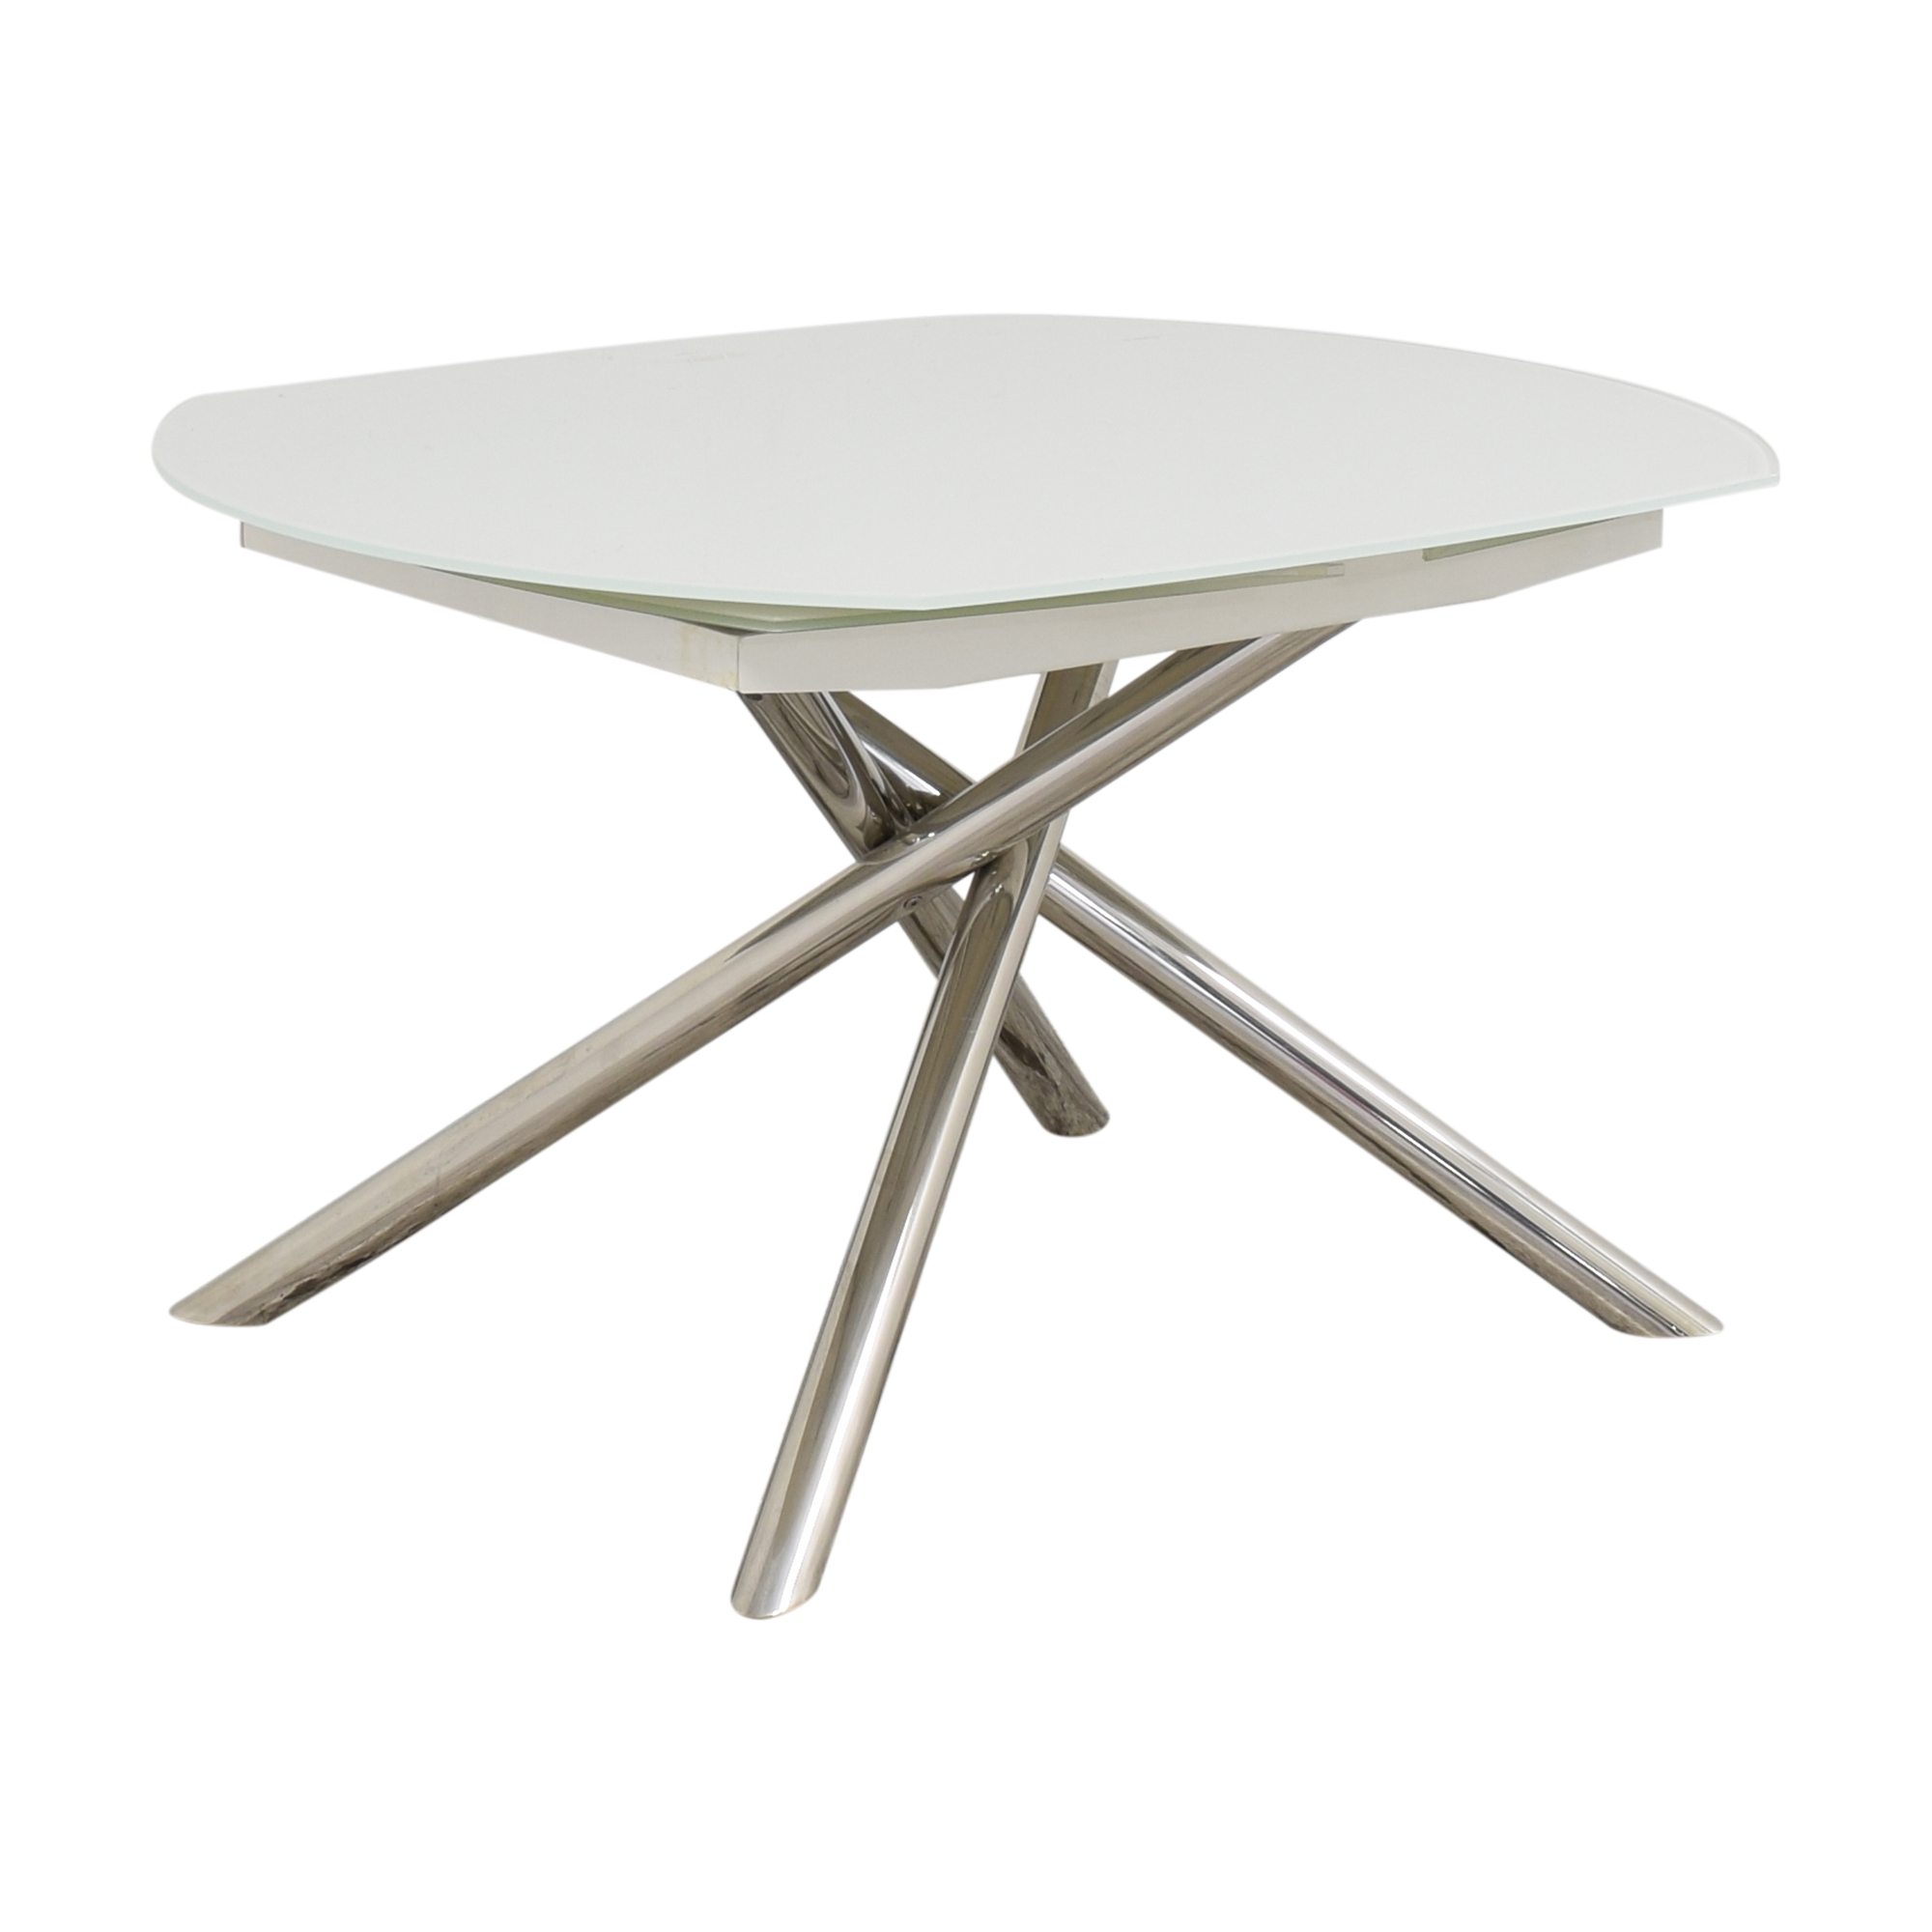 Modani Astro Extendable Dining Table / Tables